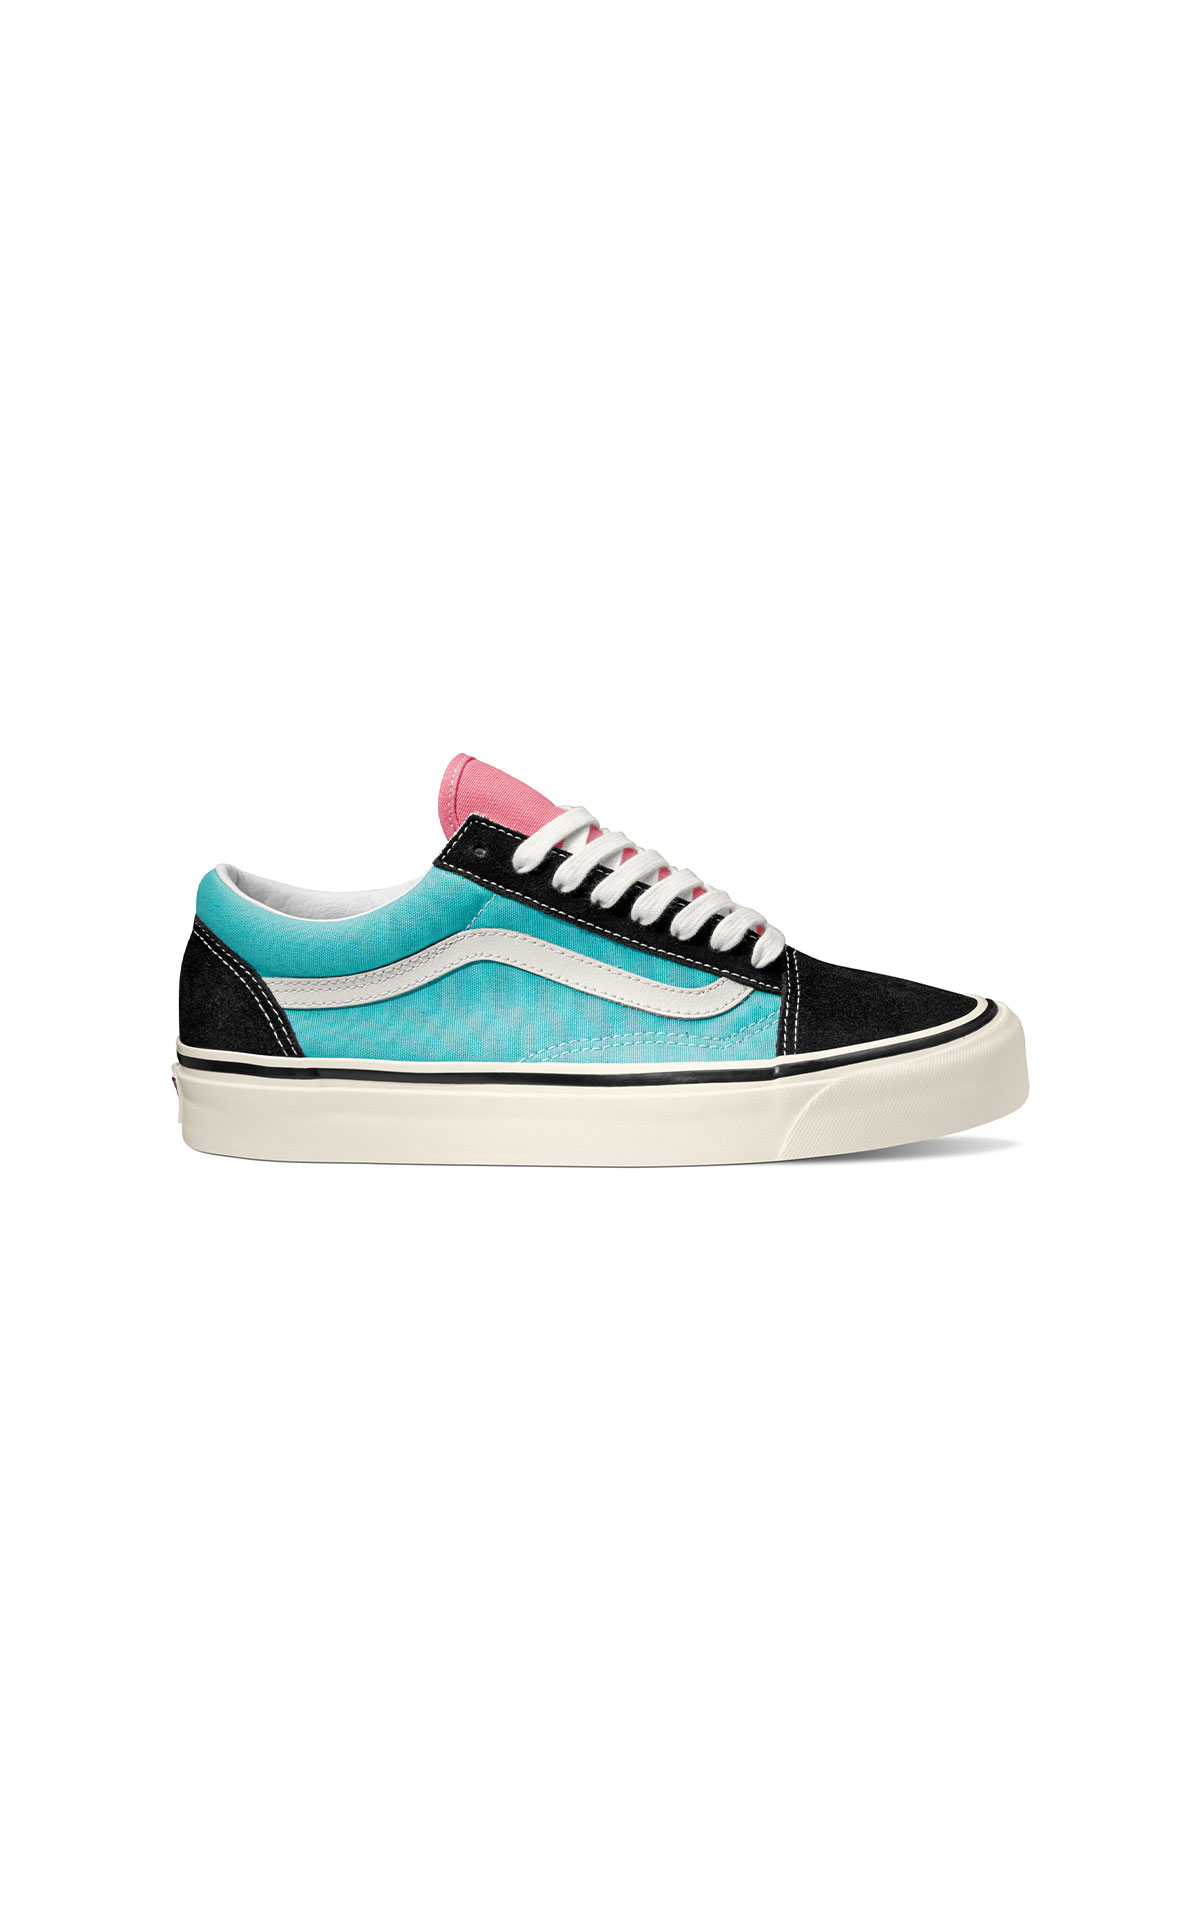 Vans UA old skool 36 DX anahm FCTY from Bicester Village